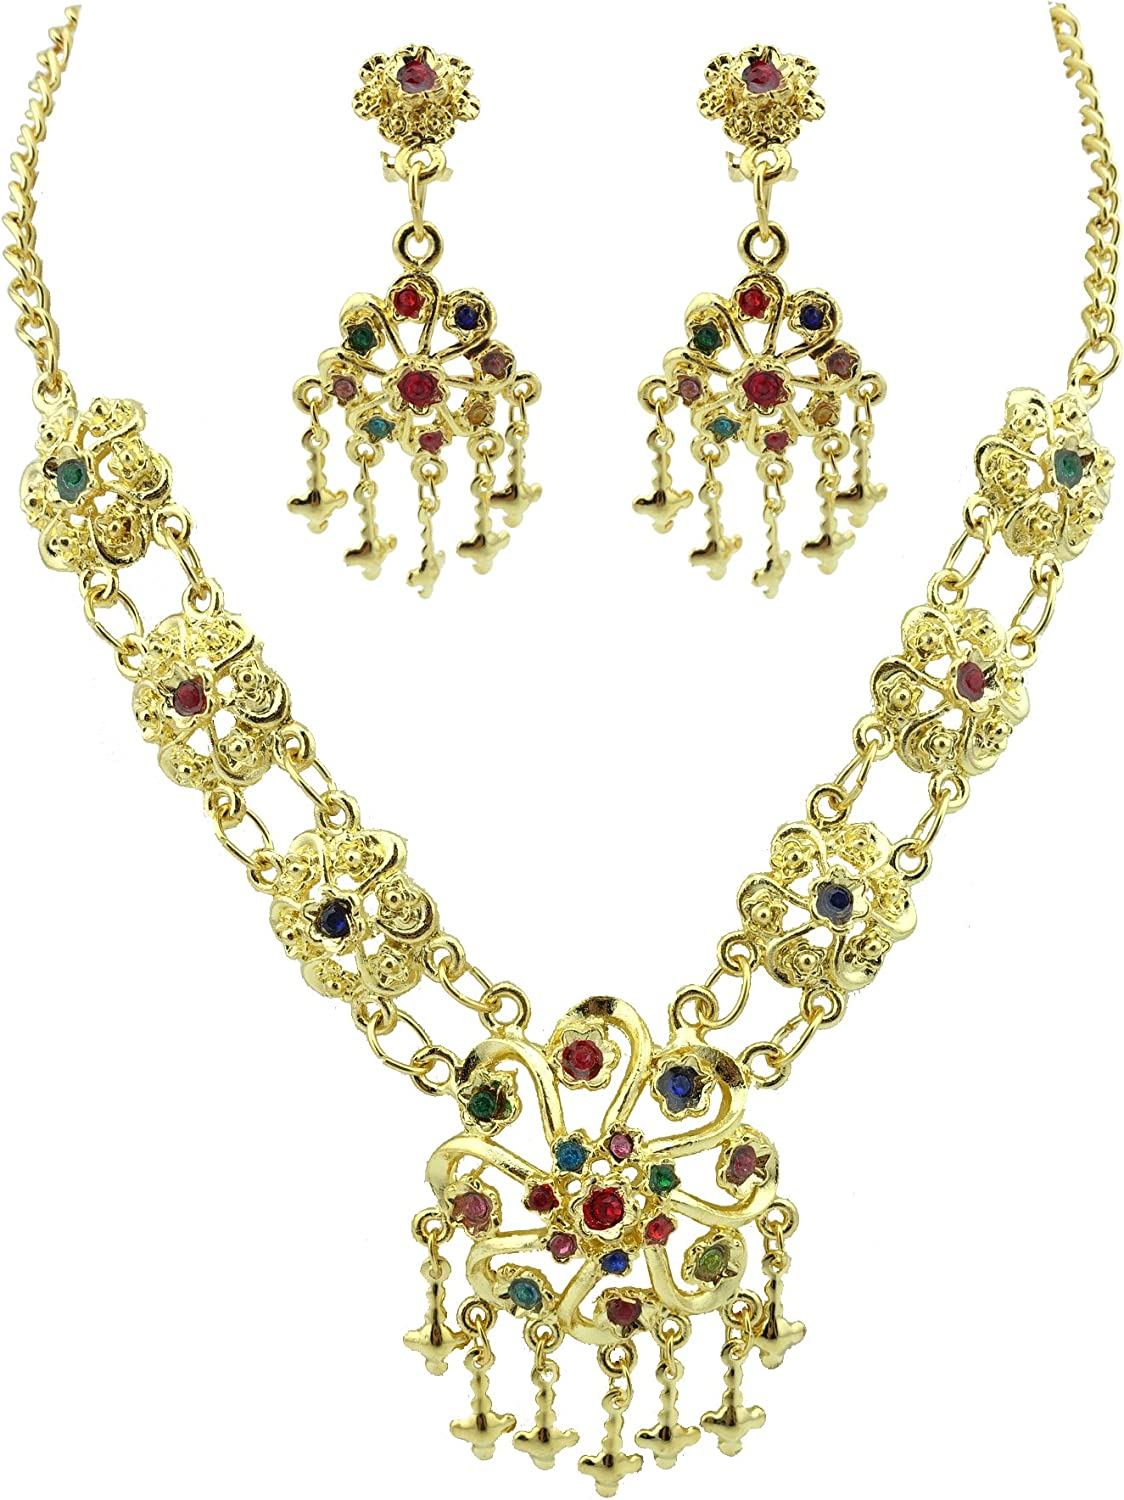 Siwalai Thai Traditional Gold Plated Multicolor Crystals Necklace Earrings Jewelry Set 18 Inches